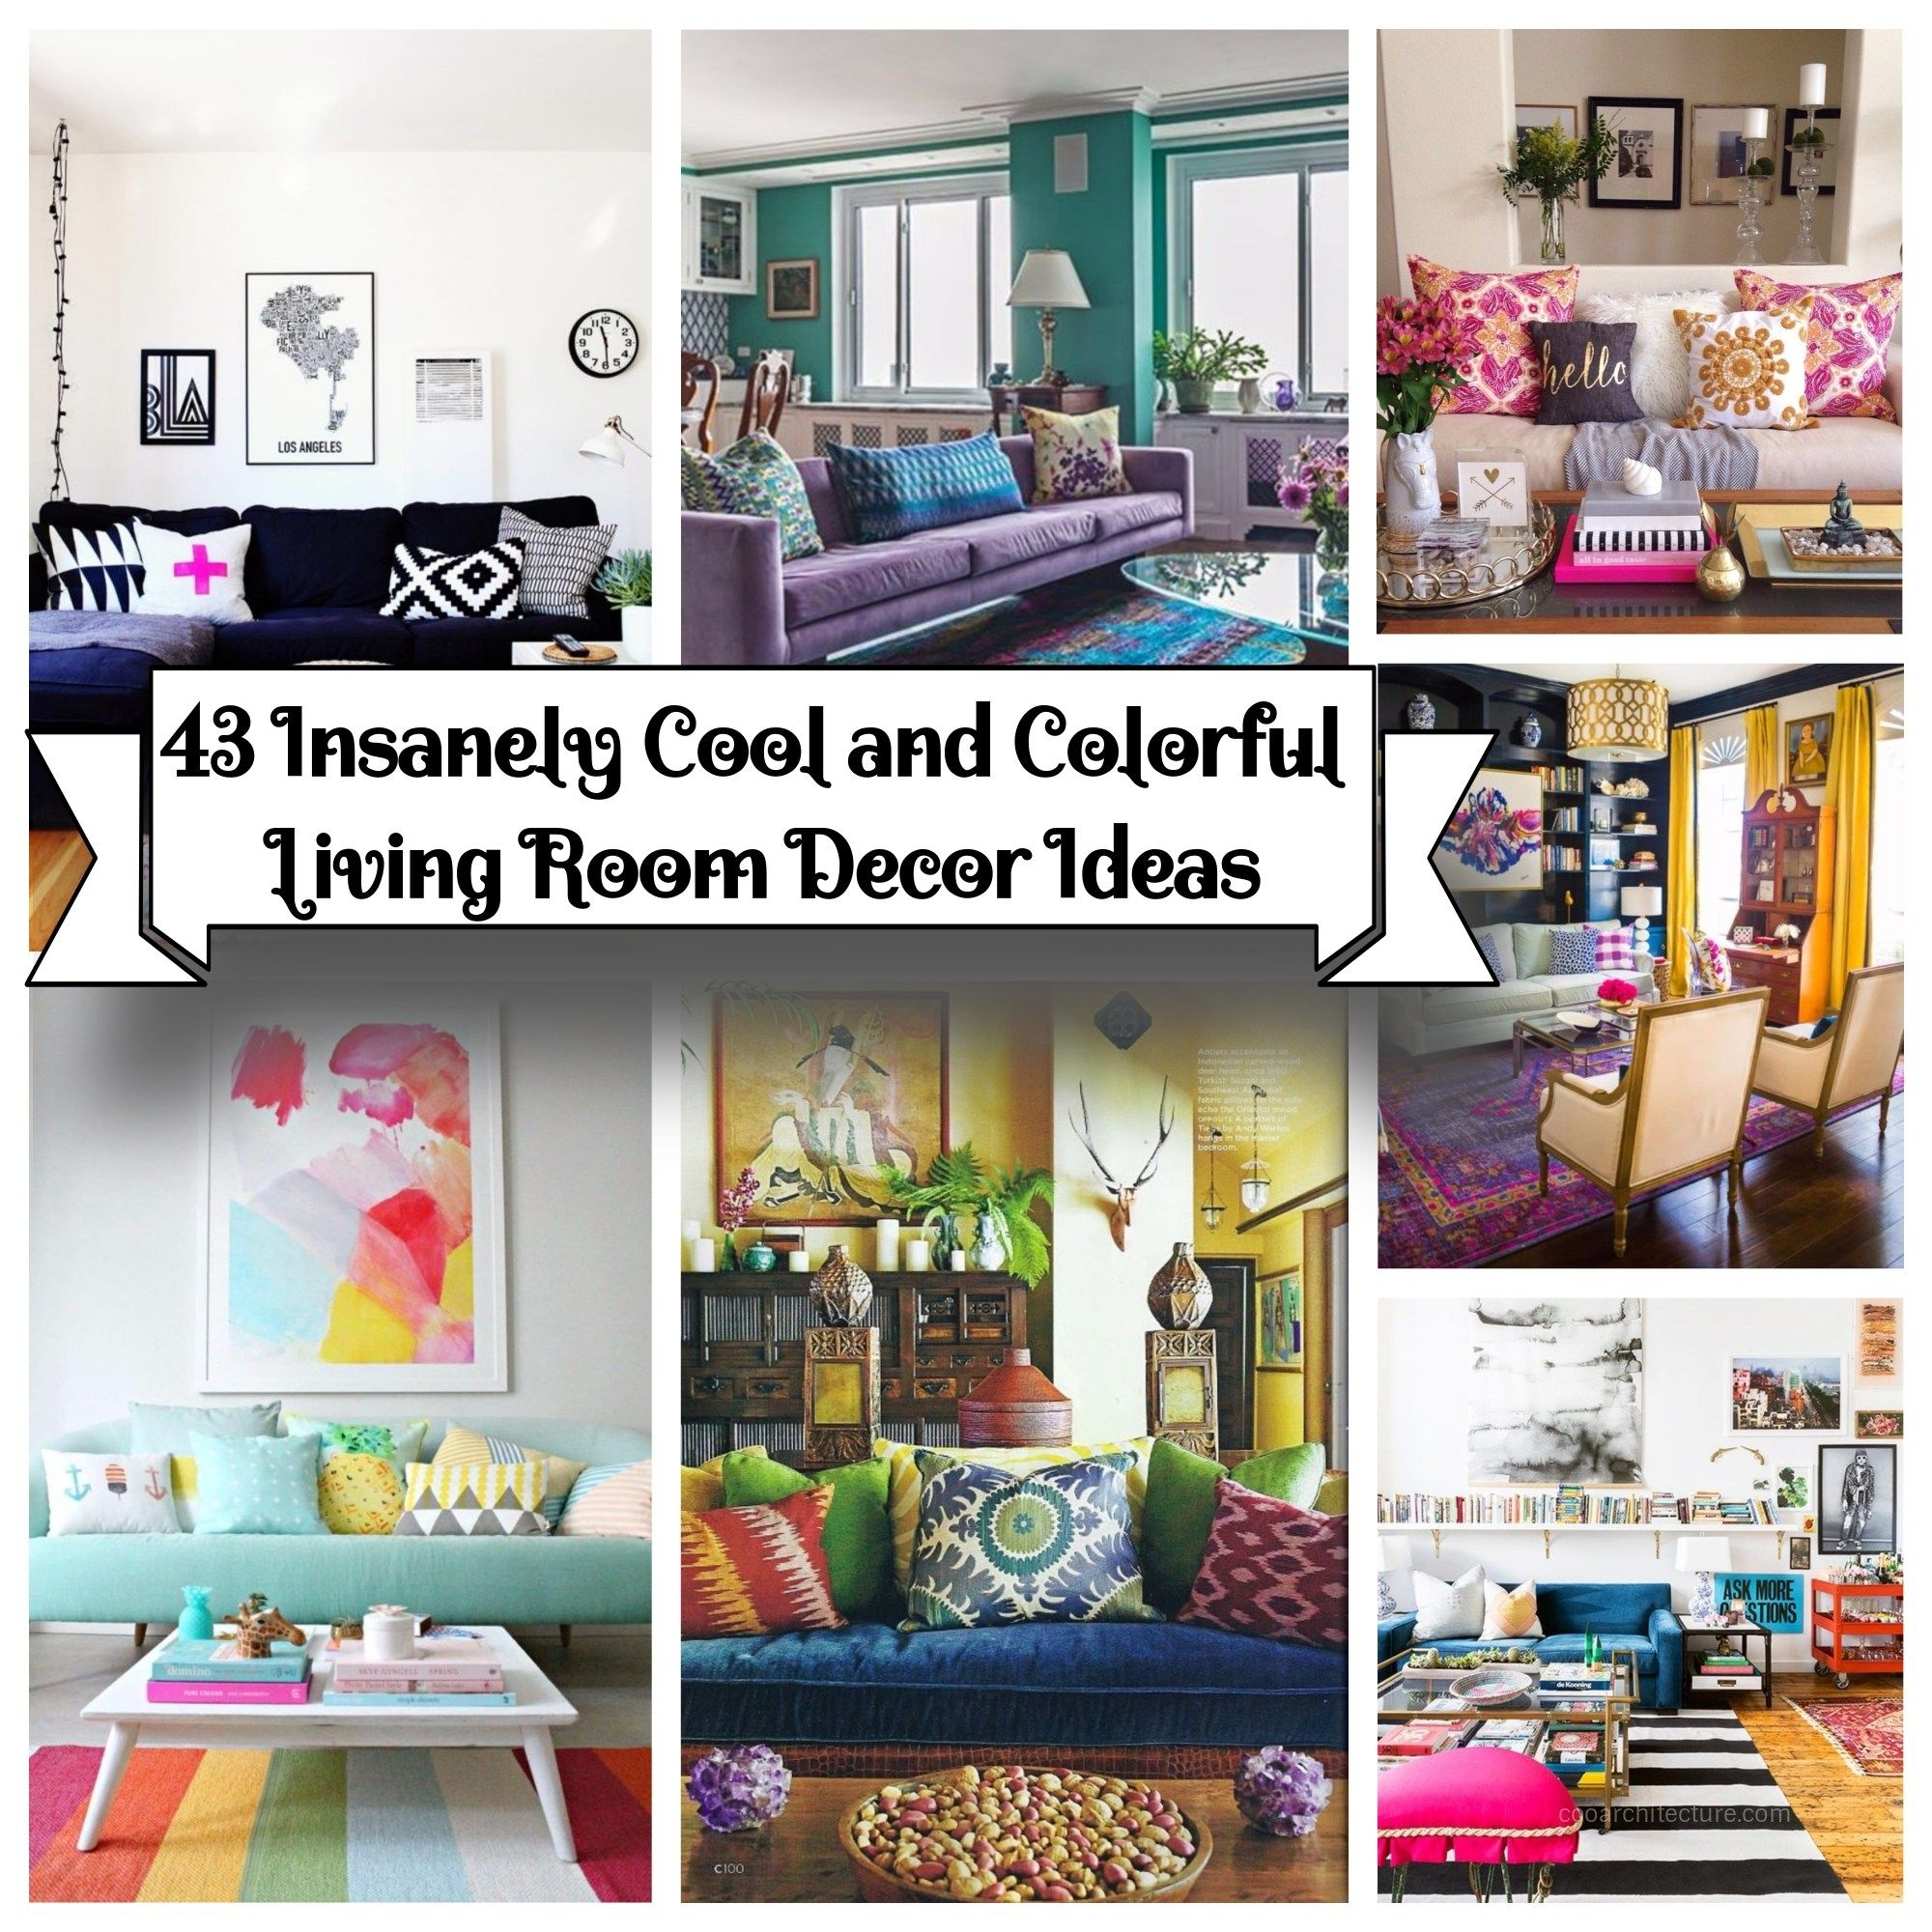 Decorating with color can be scary things to do there are so many